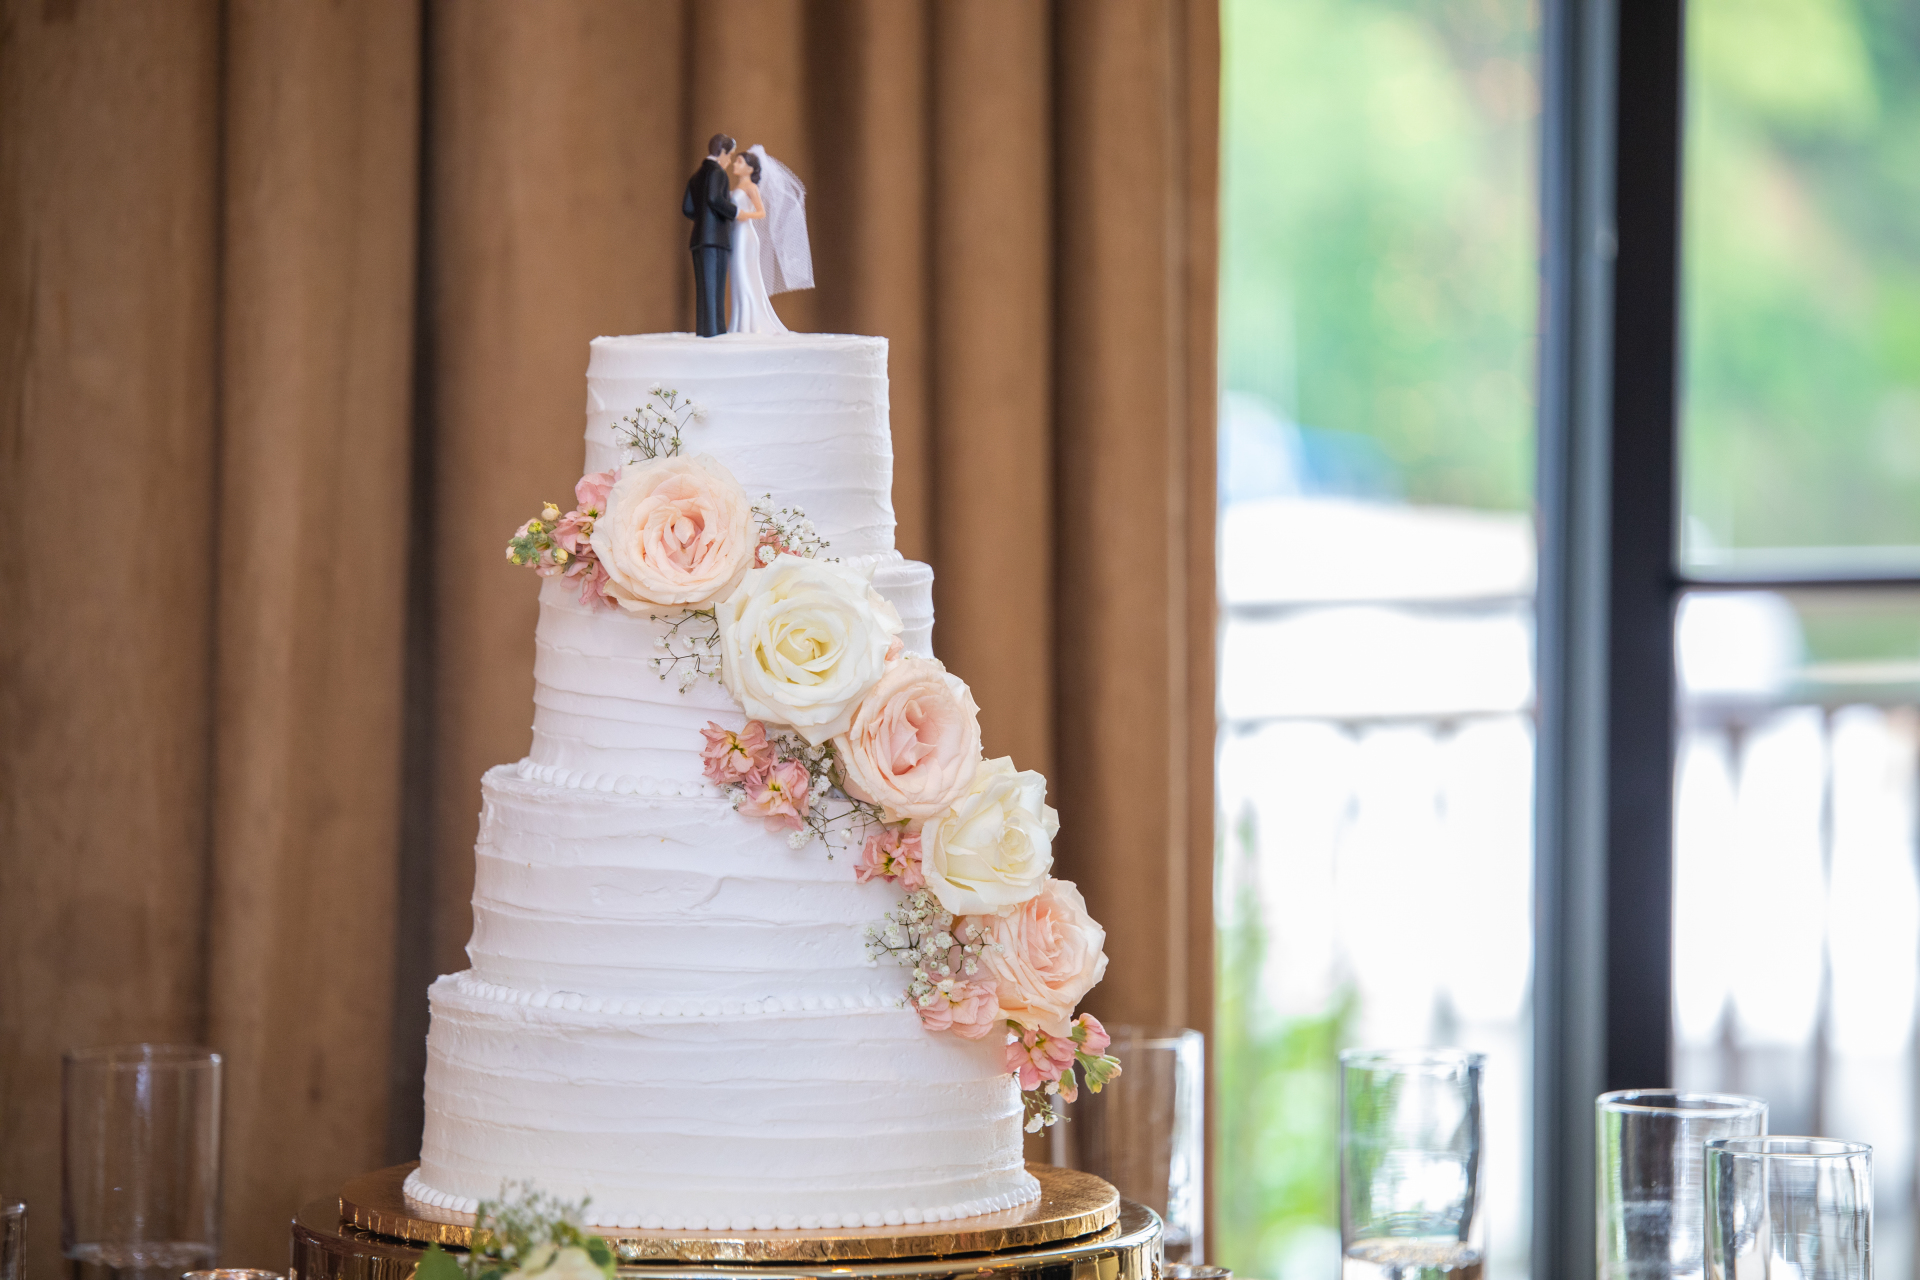 Rustic with fresh flowers(roneyfield photography)